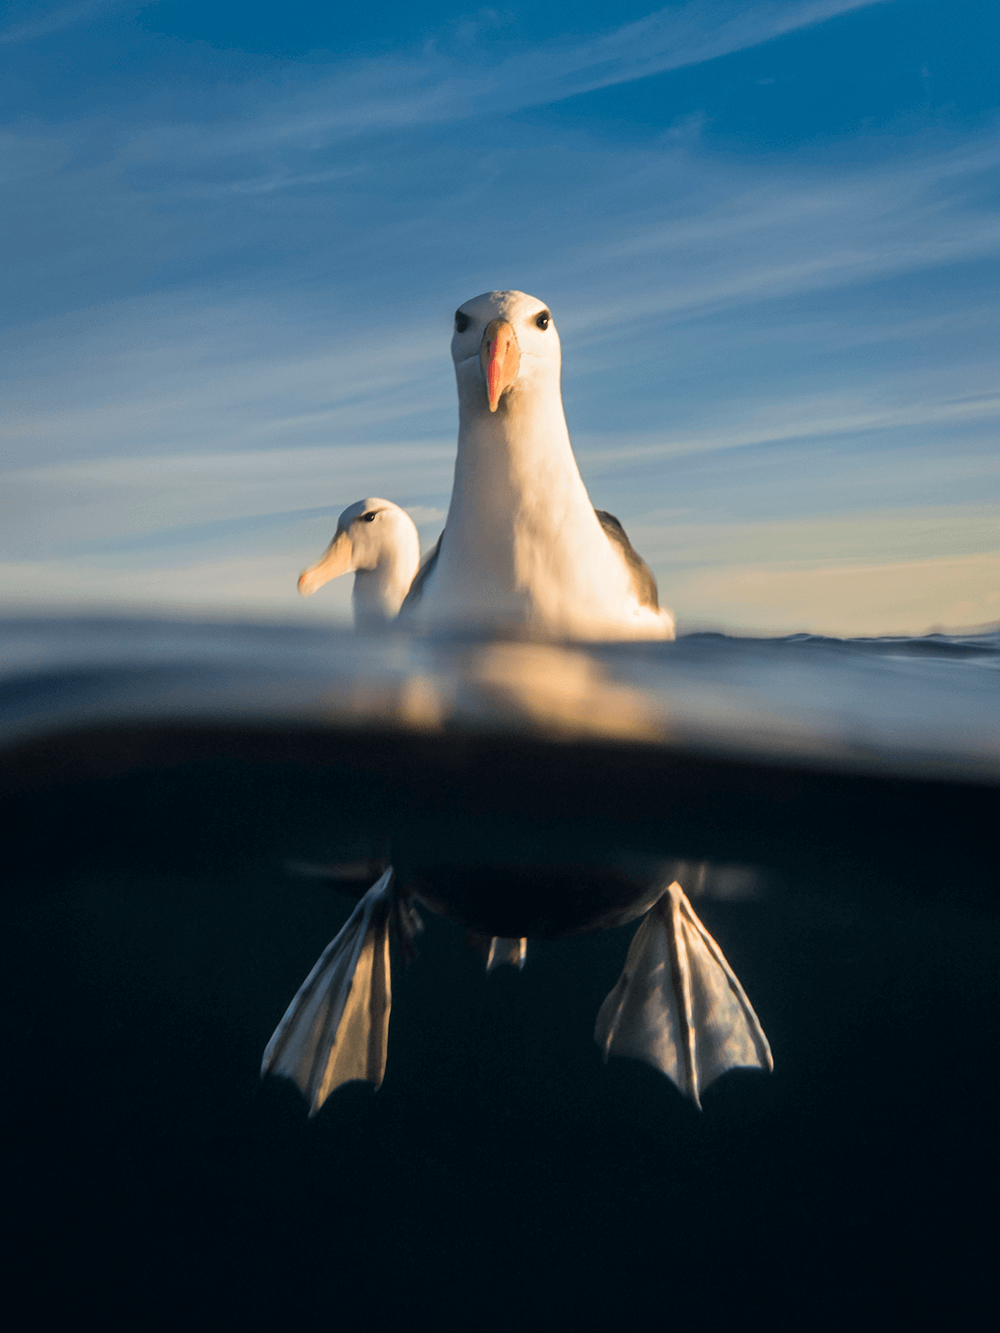 Image of a seagull by @submerged_images